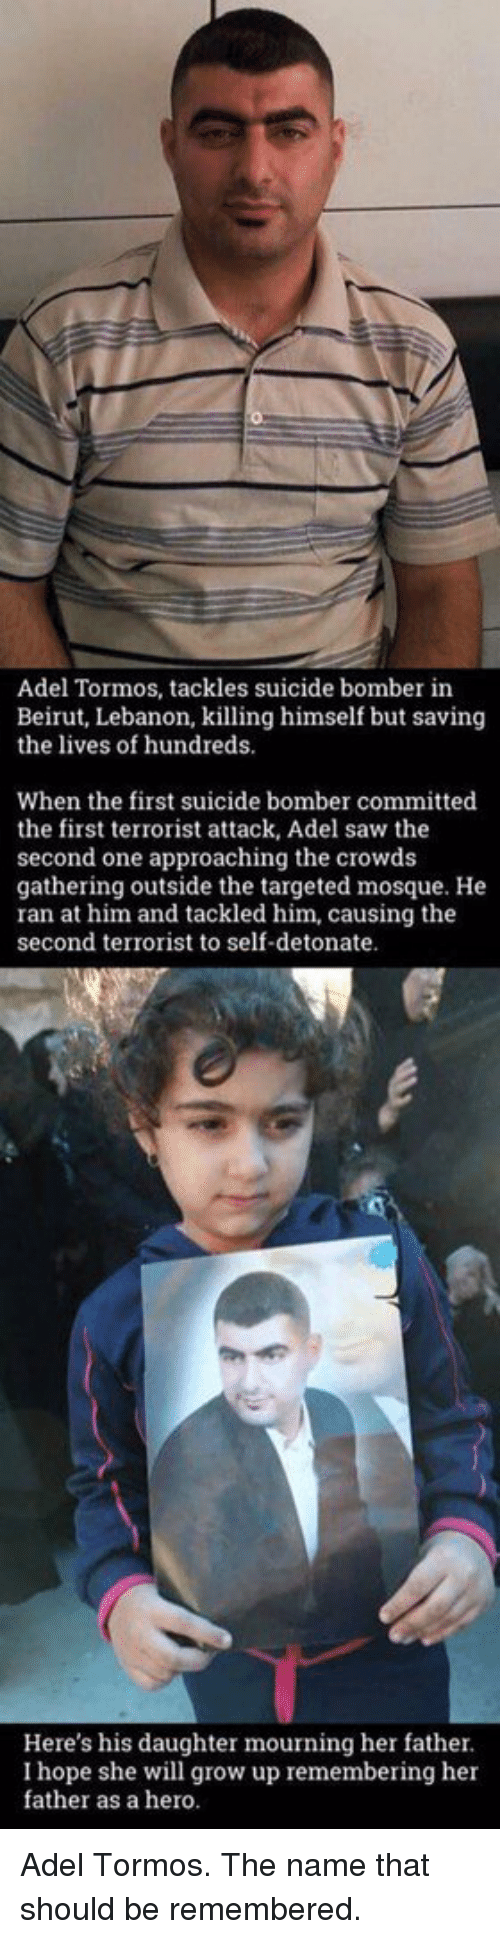 detonation: Adel Tormos, tackles suicide bomber in  Beirut, Lebanon, killing himself but saving  the lives of hundreds.  When the first suicide bomber committed  the first terrorist attack, Adel saw the  second one approaching the crowds  gathering outside the targeted mosque. He  ran at him and tackled him, causing the  second terrorist to self-detonate.  Here's his daughter mourning her father.  she will grow up remembering father as a hero. Adel Tormos. The name that should be remembered.